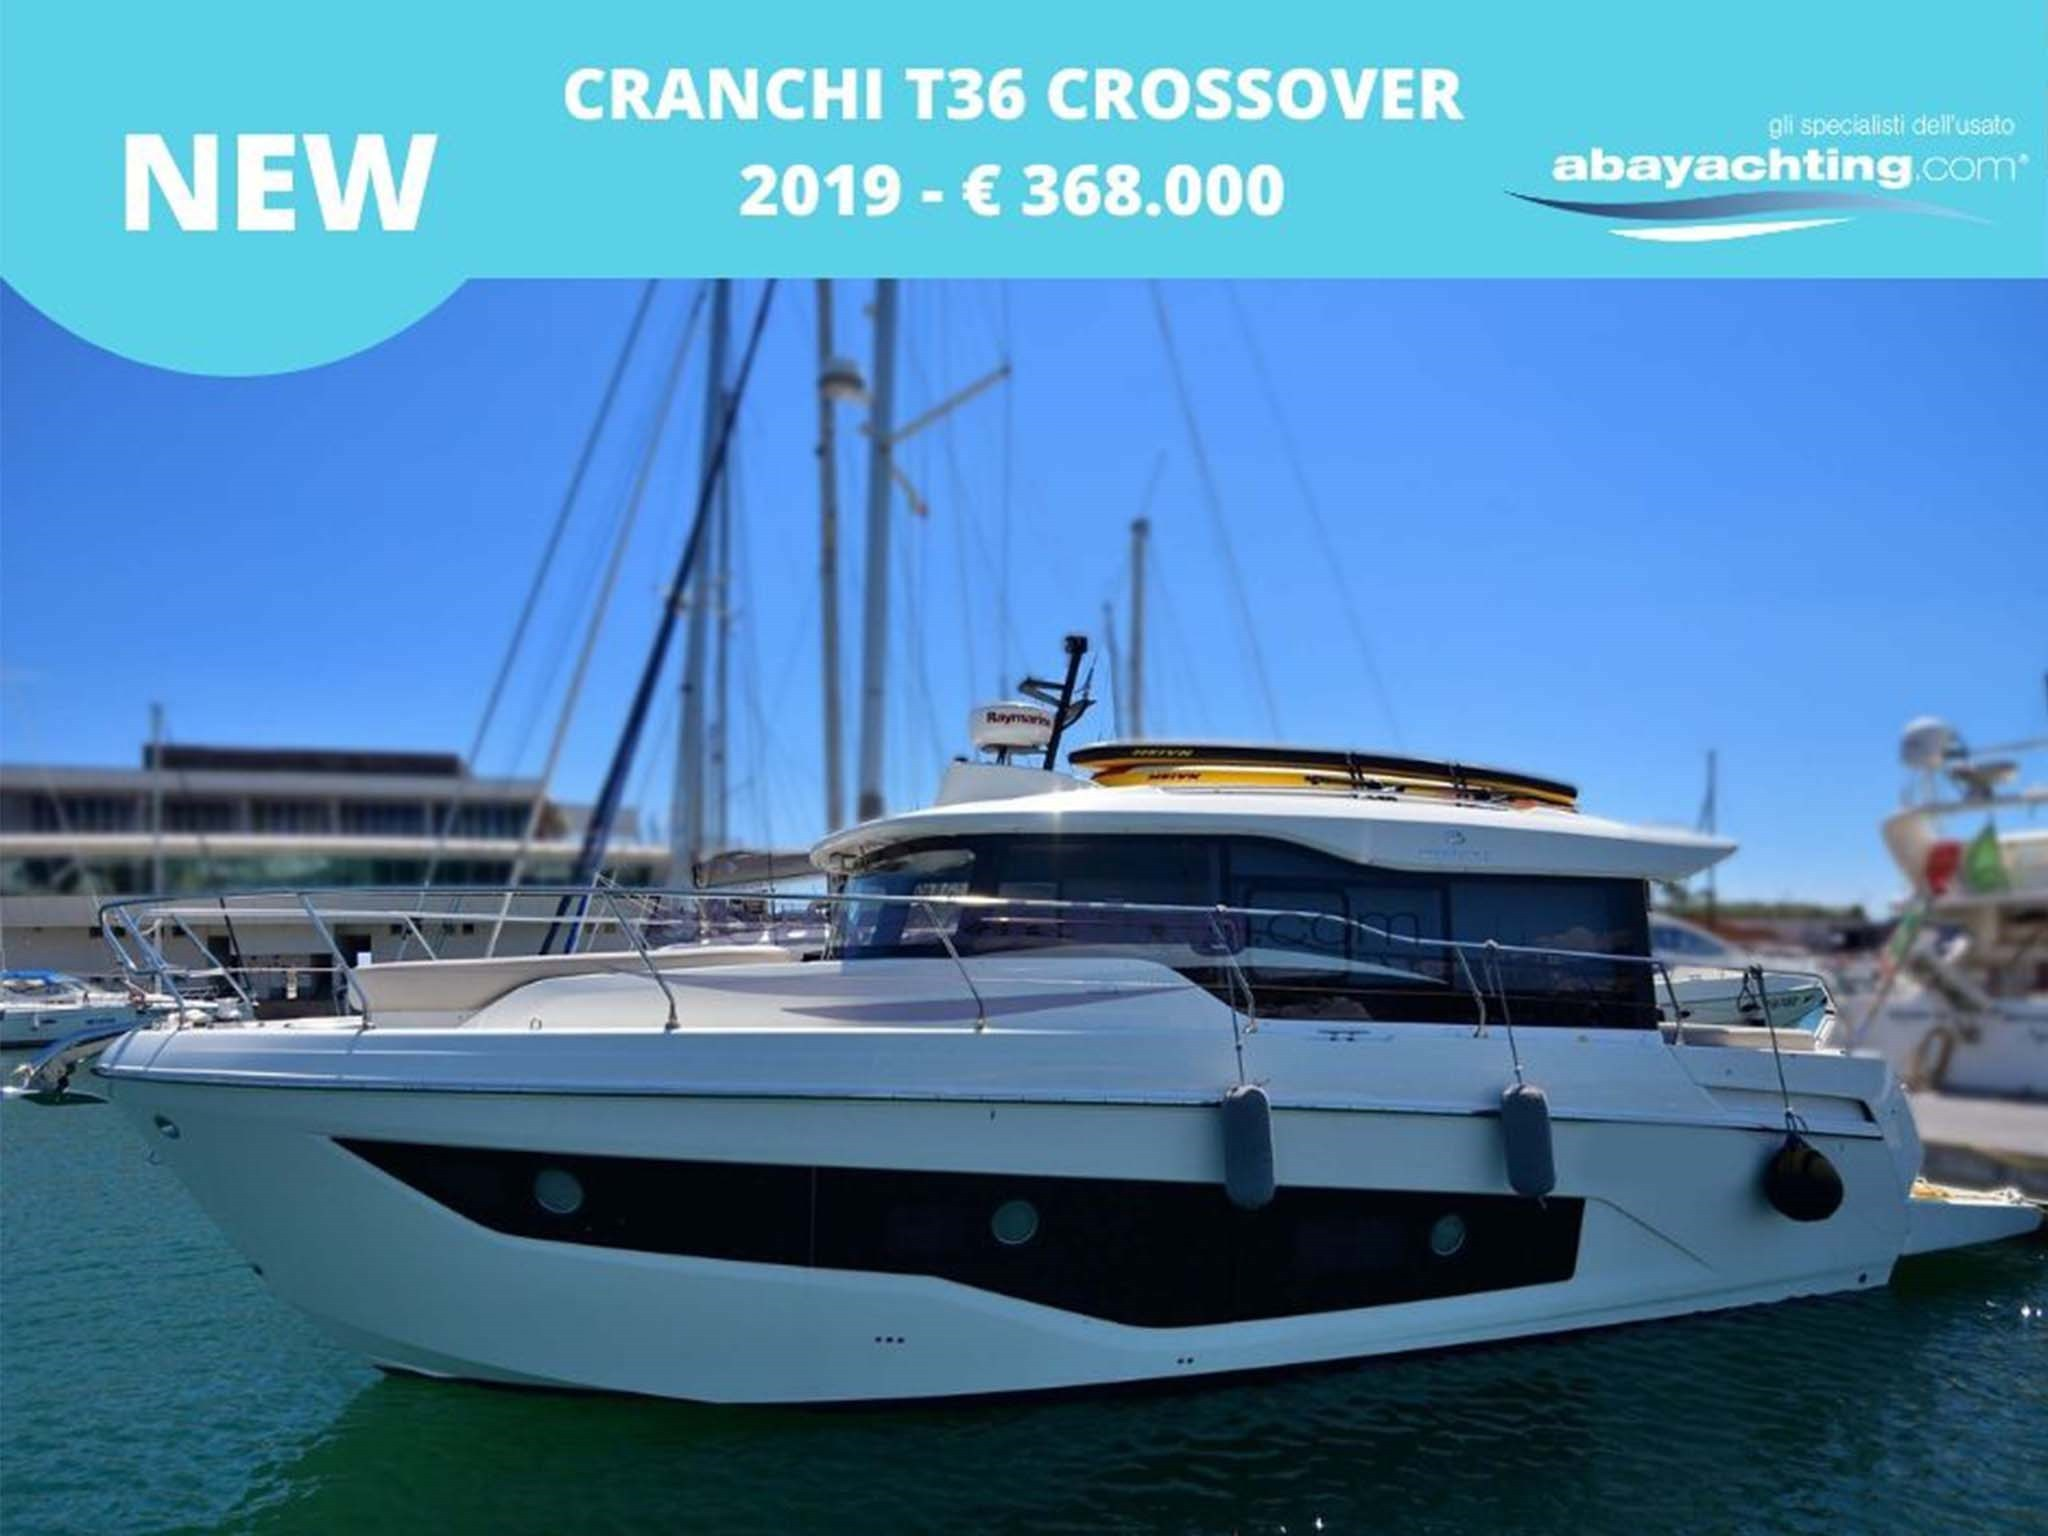 New arrival Cranchi T36 Crossover